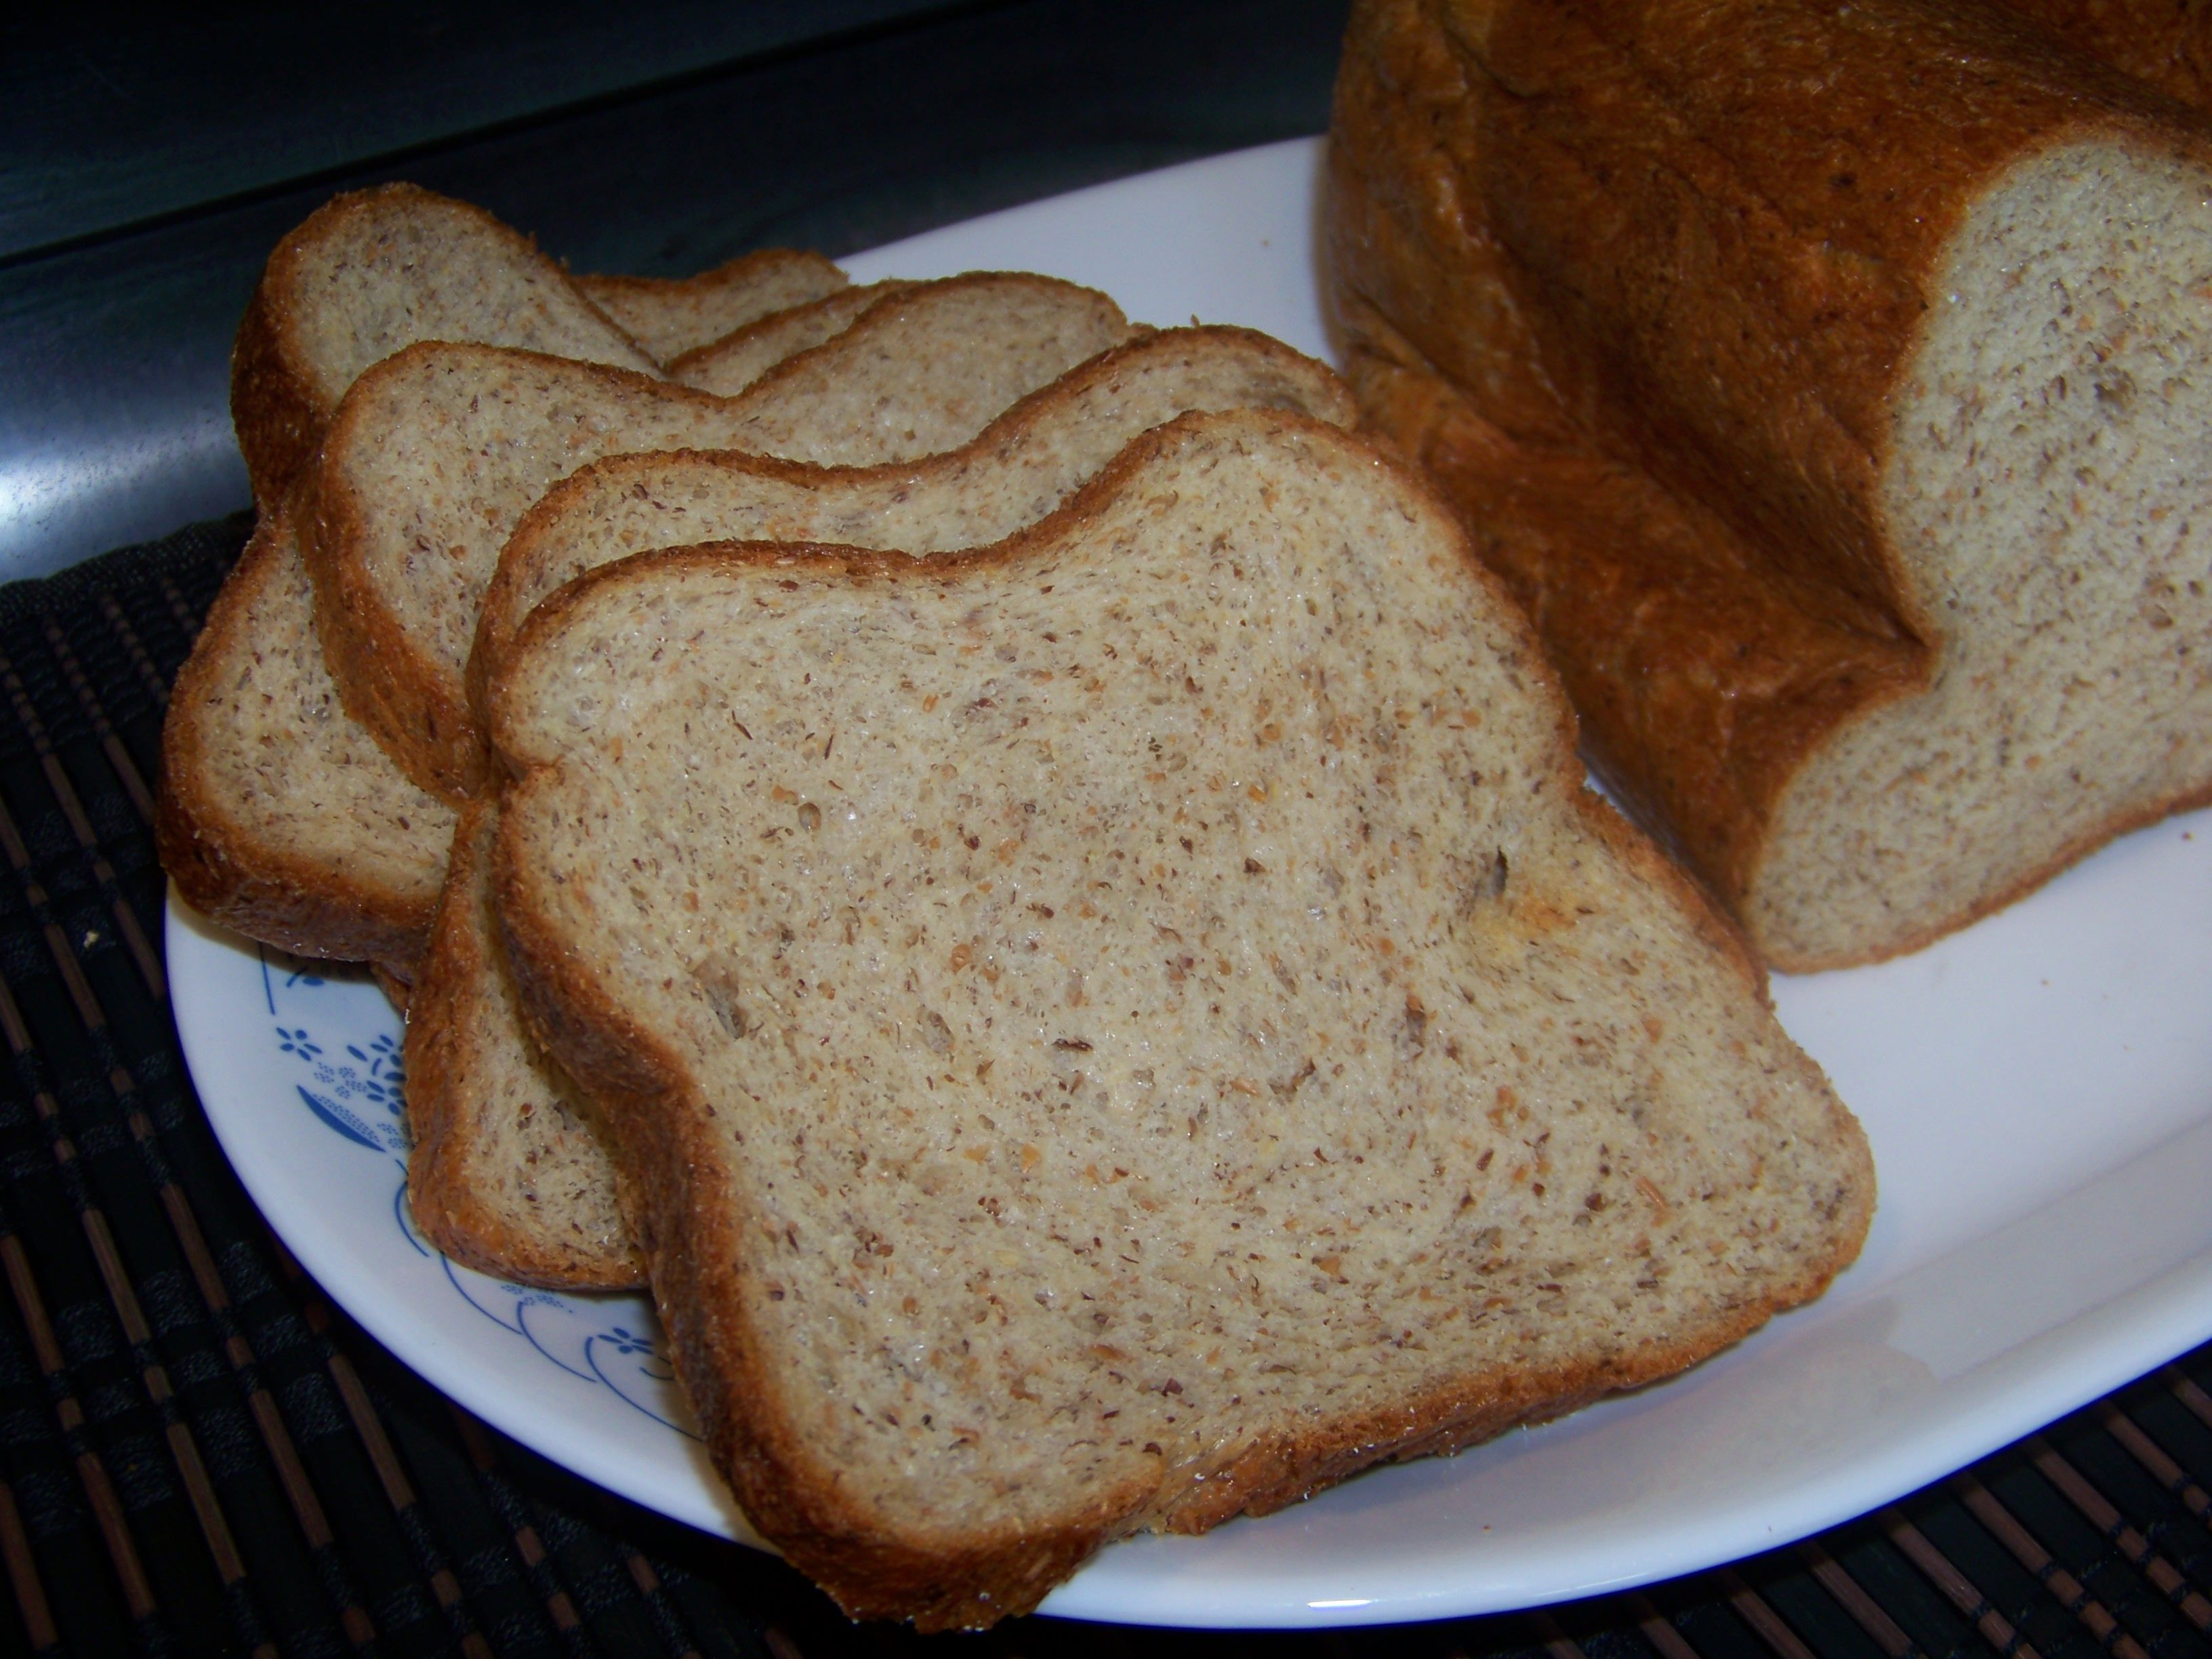 This is the best homemade low carb yeast bread recipe that I have found that gets great results every time. Can be baked in a bread machine or the oven.